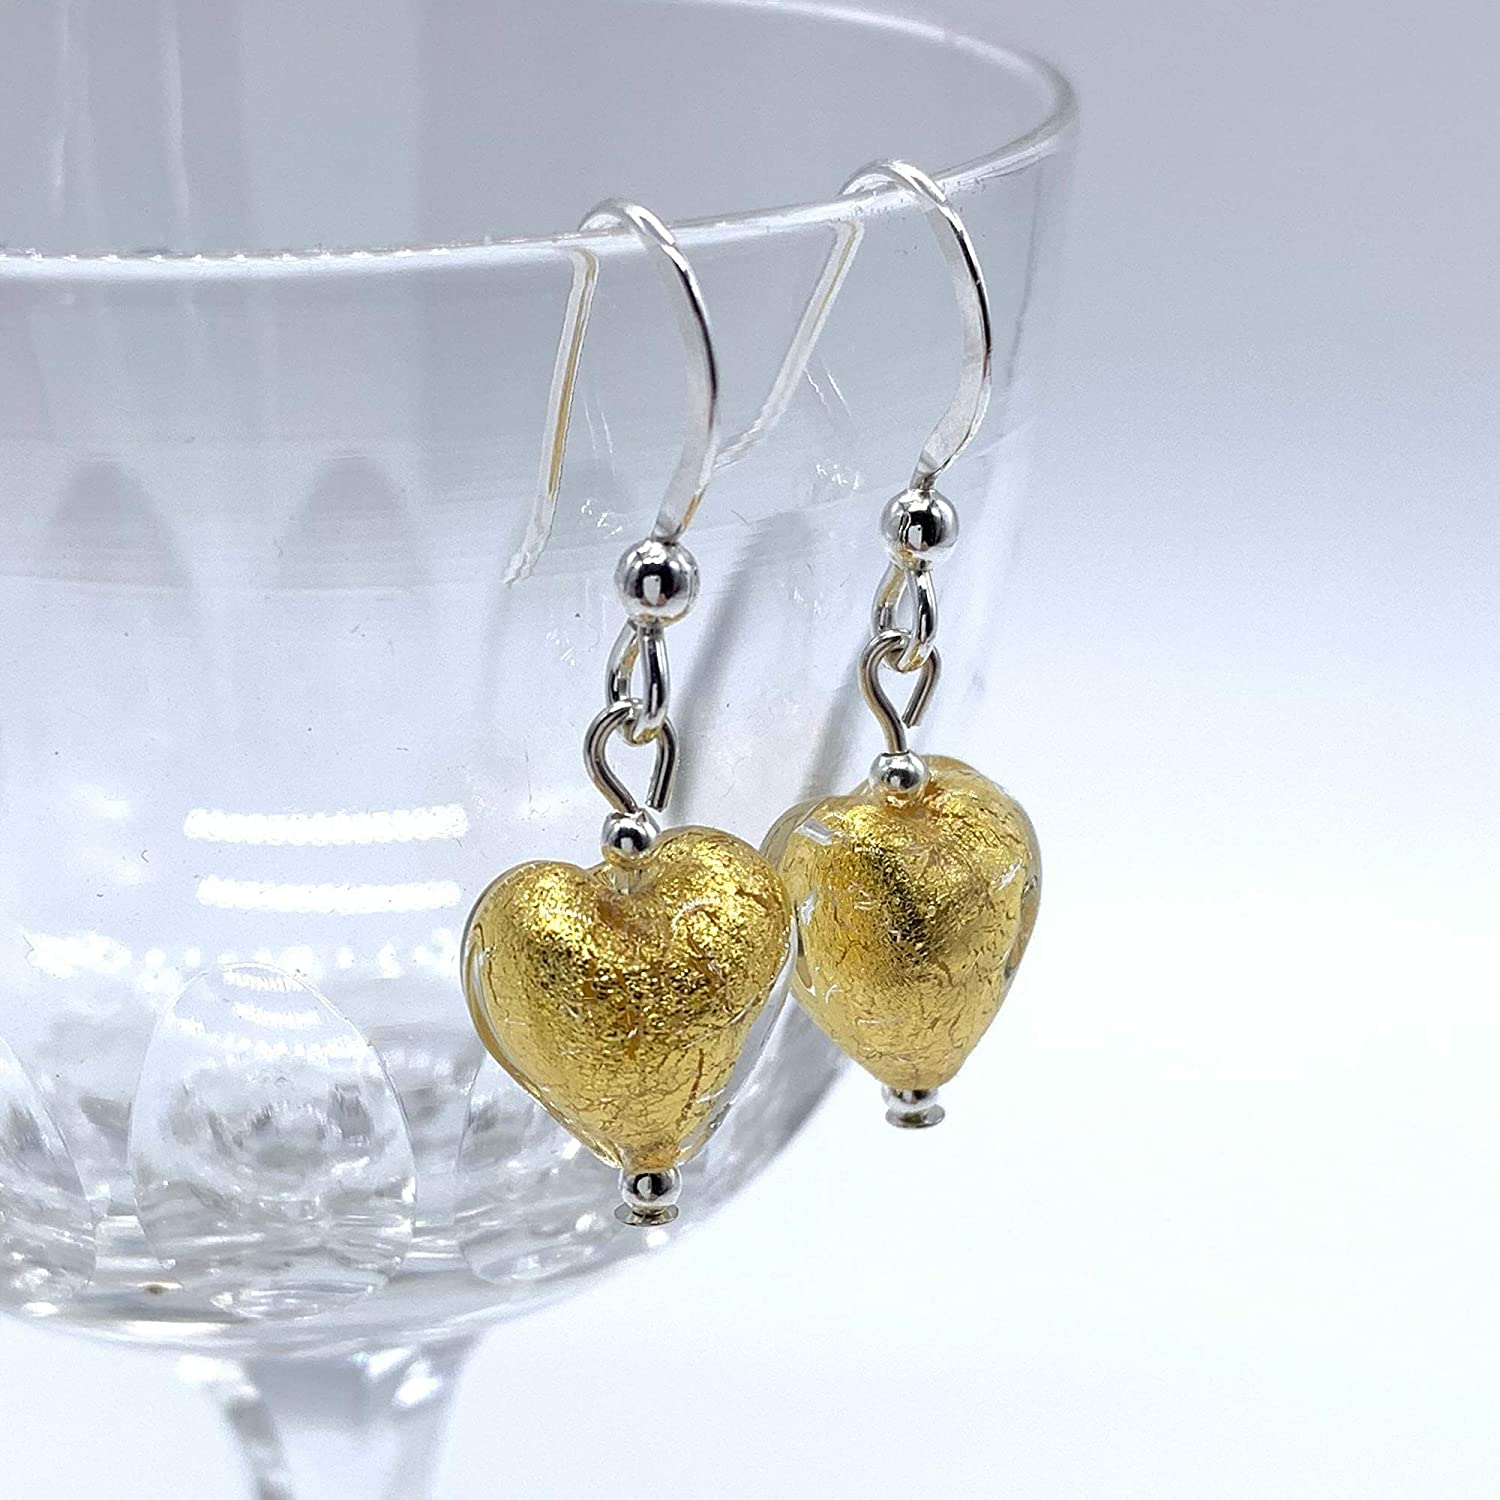 pale Diana Ingram earrings with light gold Murano glass mini heart drops on Sterling Silver or 22 Carat gold vermeil hooks